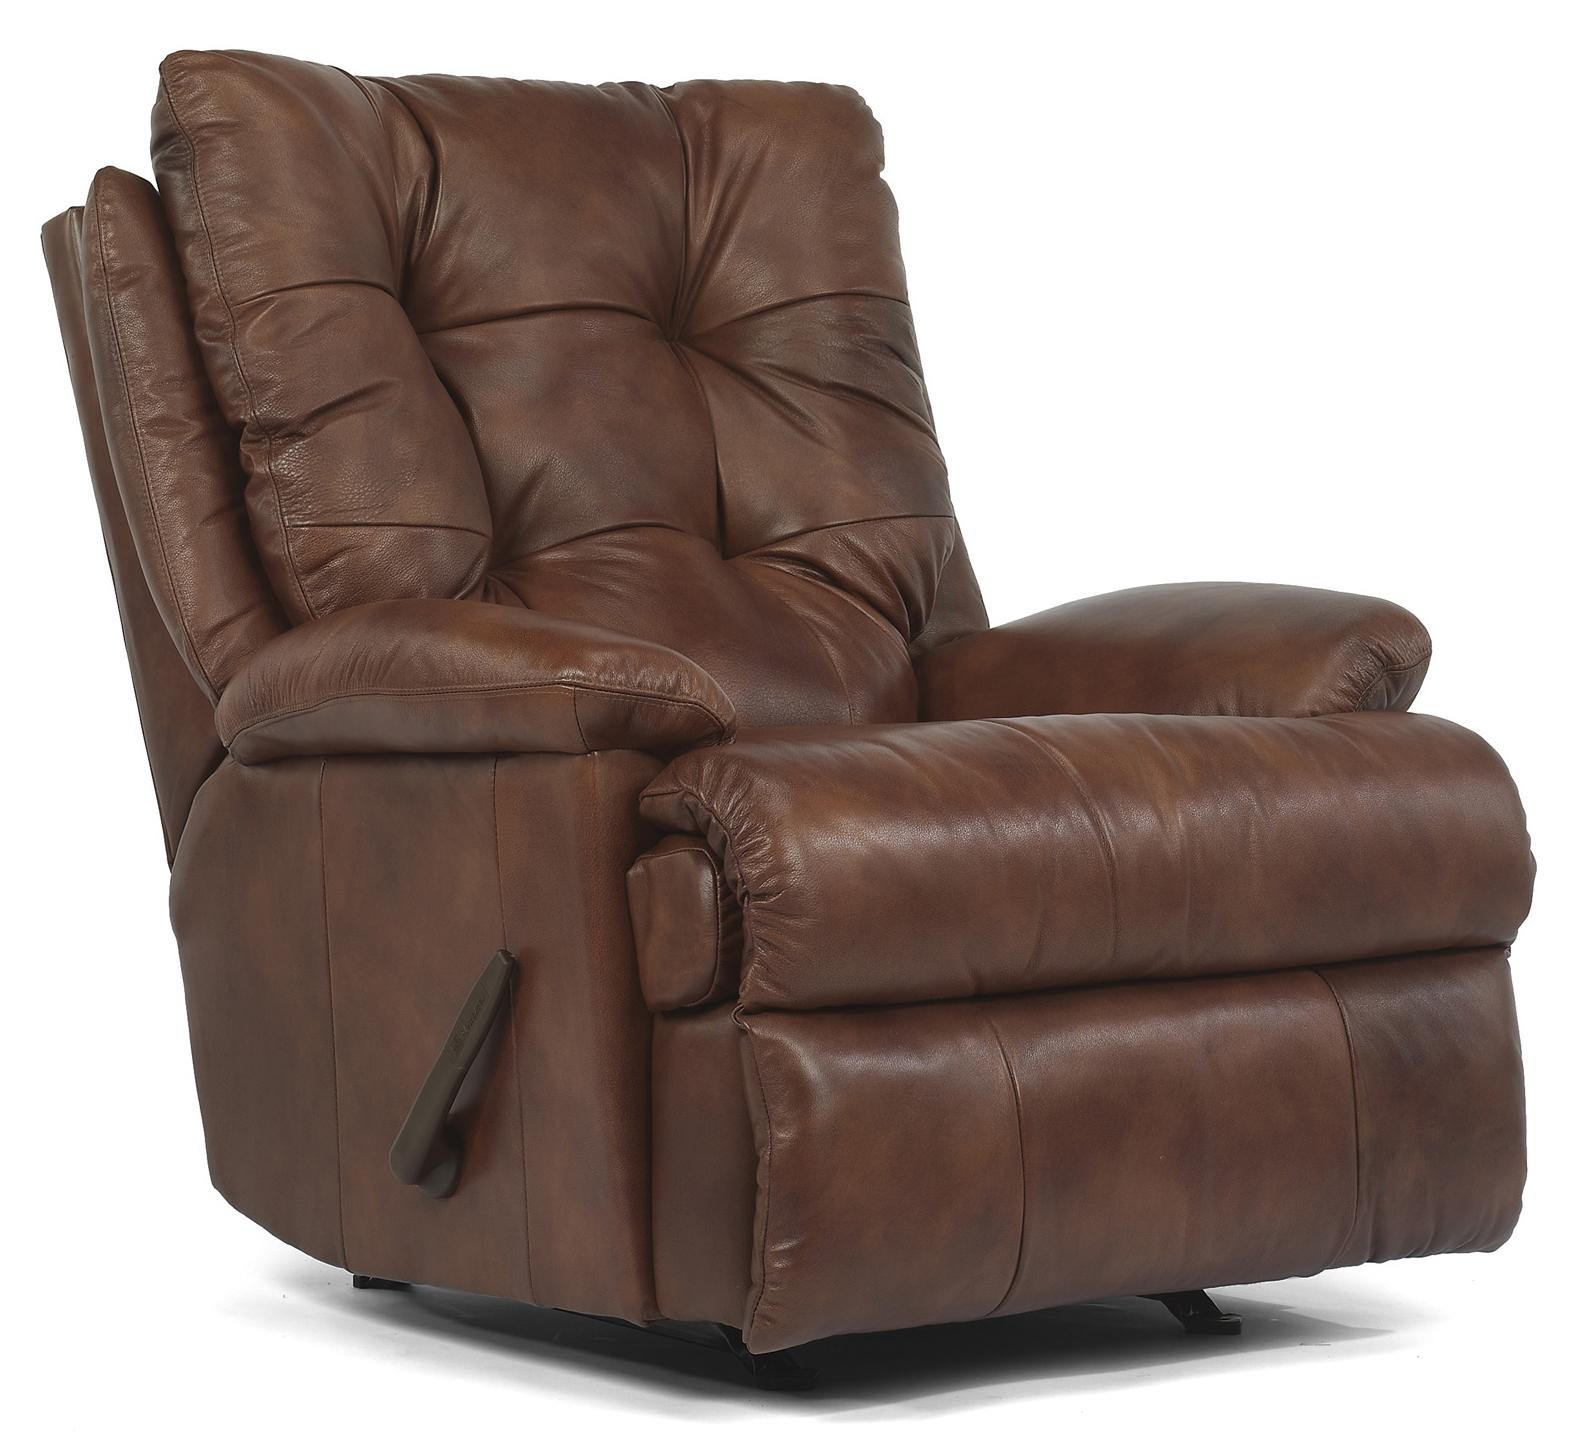 Flexsteel Latitudes - Clarke Rocker Recliner - Item Number: 1218-510